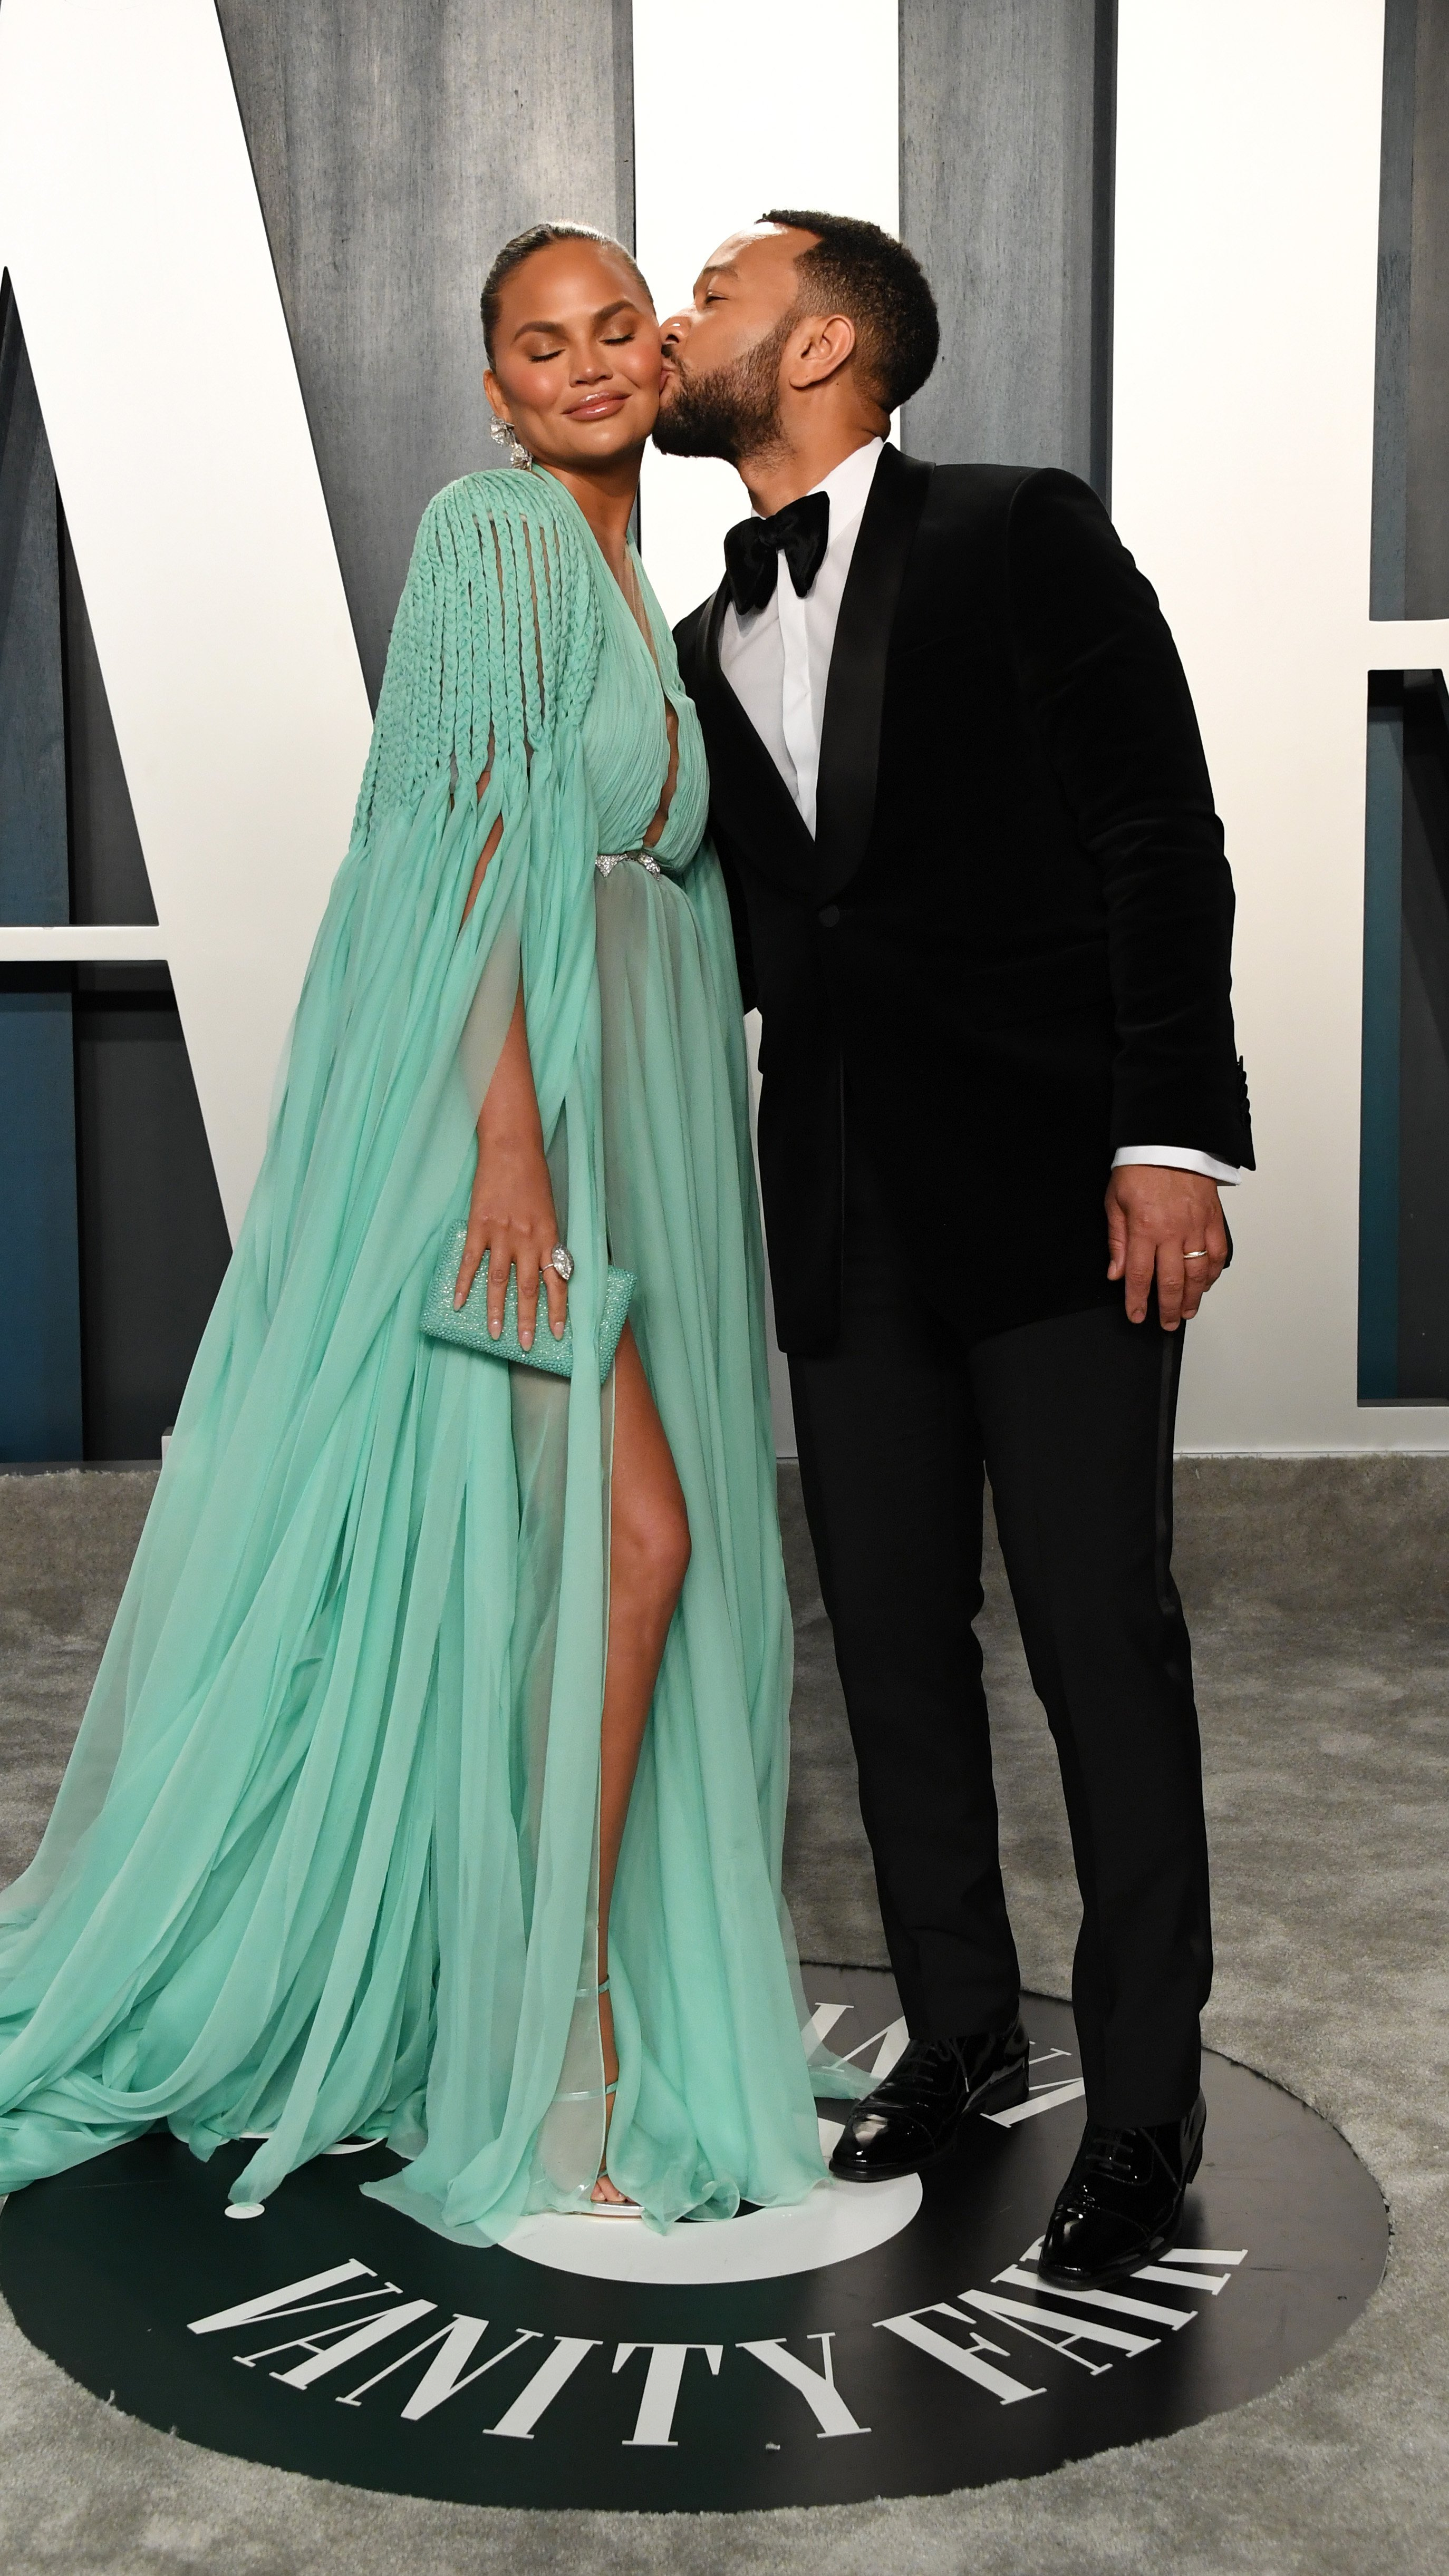 Chrissy Teigen and John Legend attend the 2020 Vanity Fair Oscar Party on February 09, 2020, in Beverly Hills, California. | Source: Getty Images.